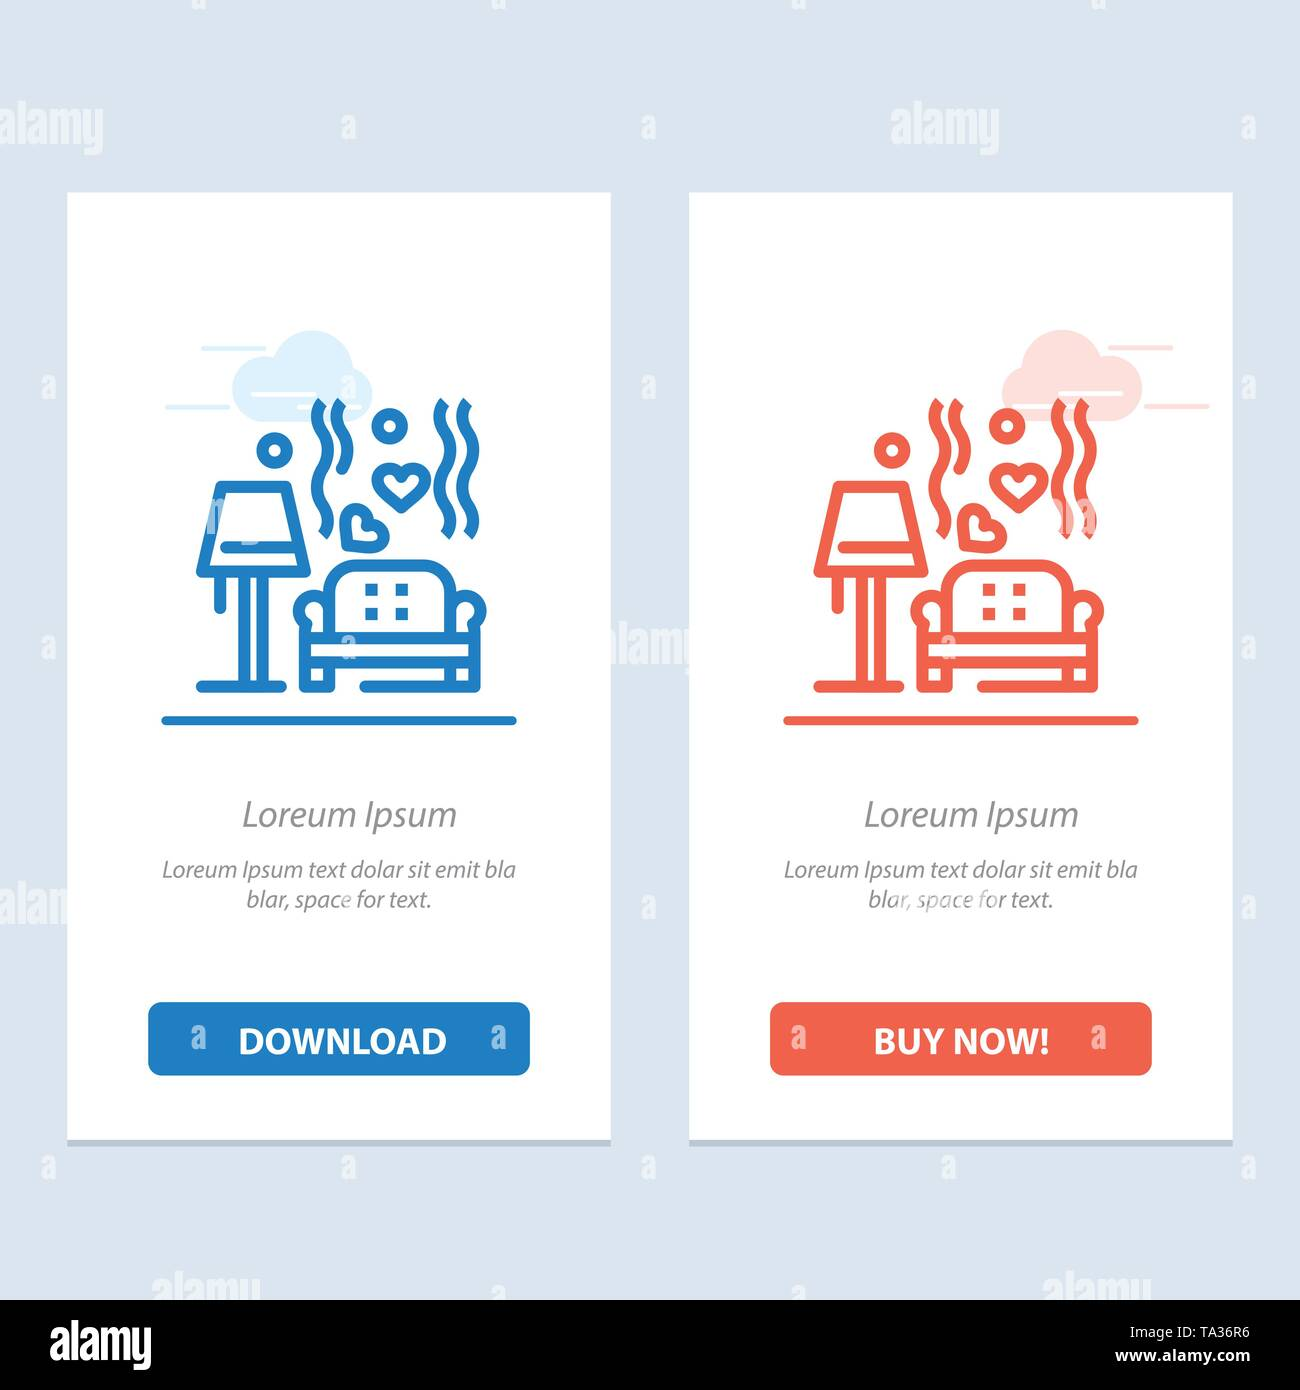 Lump, Sofa, Love, Heart, Wedding  Blue and Red Download and Buy Now web Widget Card Template - Stock Image